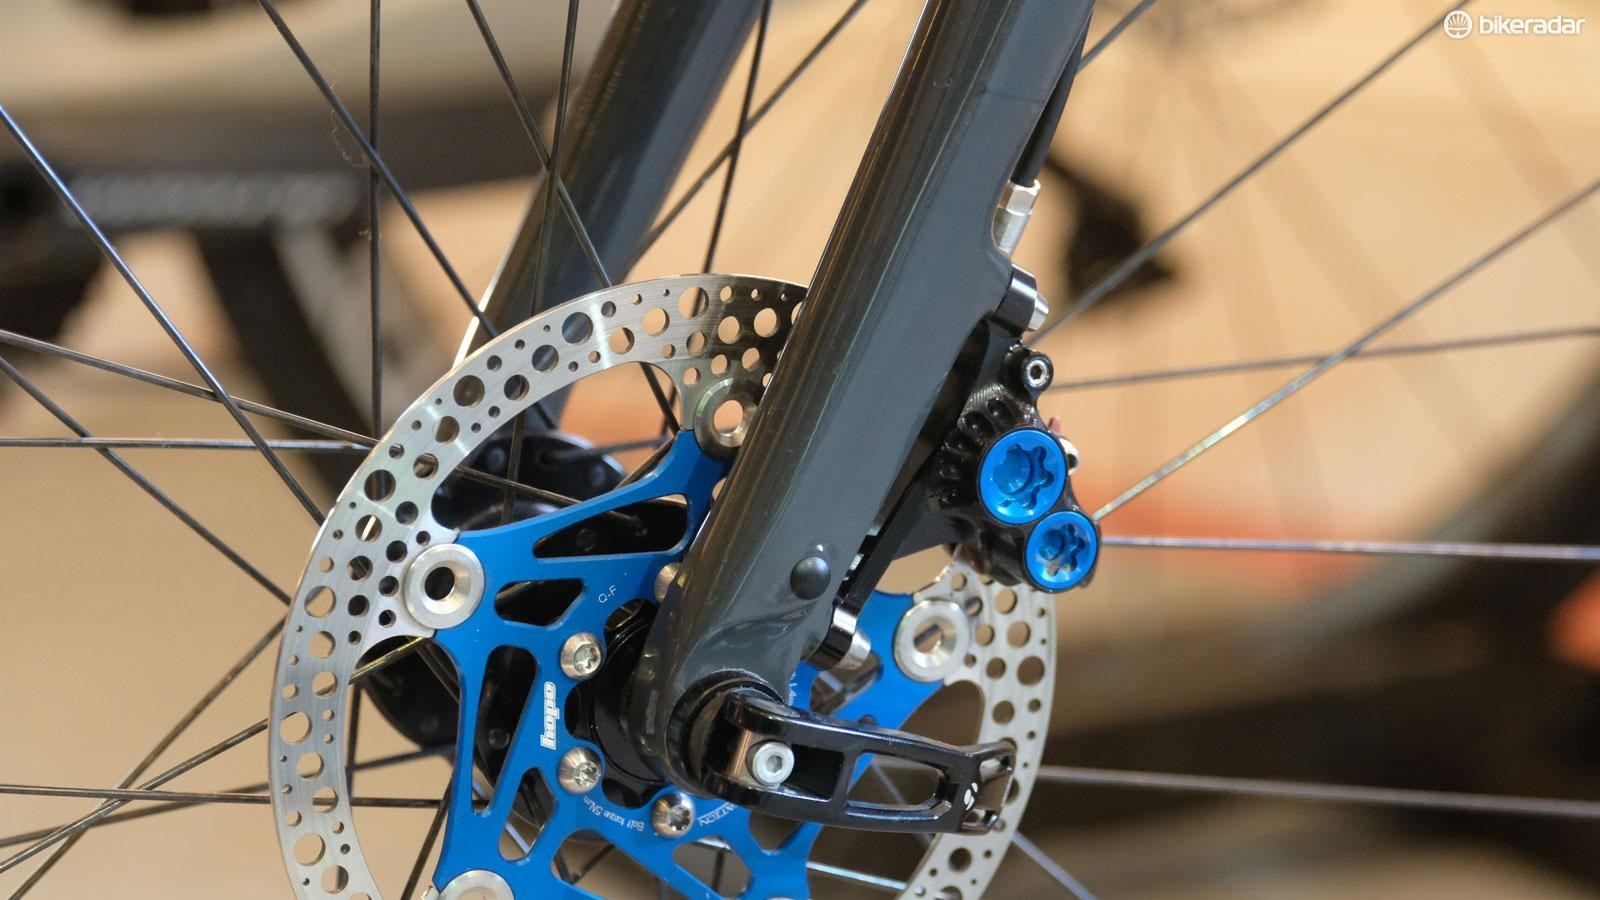 RX8 calipers can be attached to both Shimano or SRAM levers